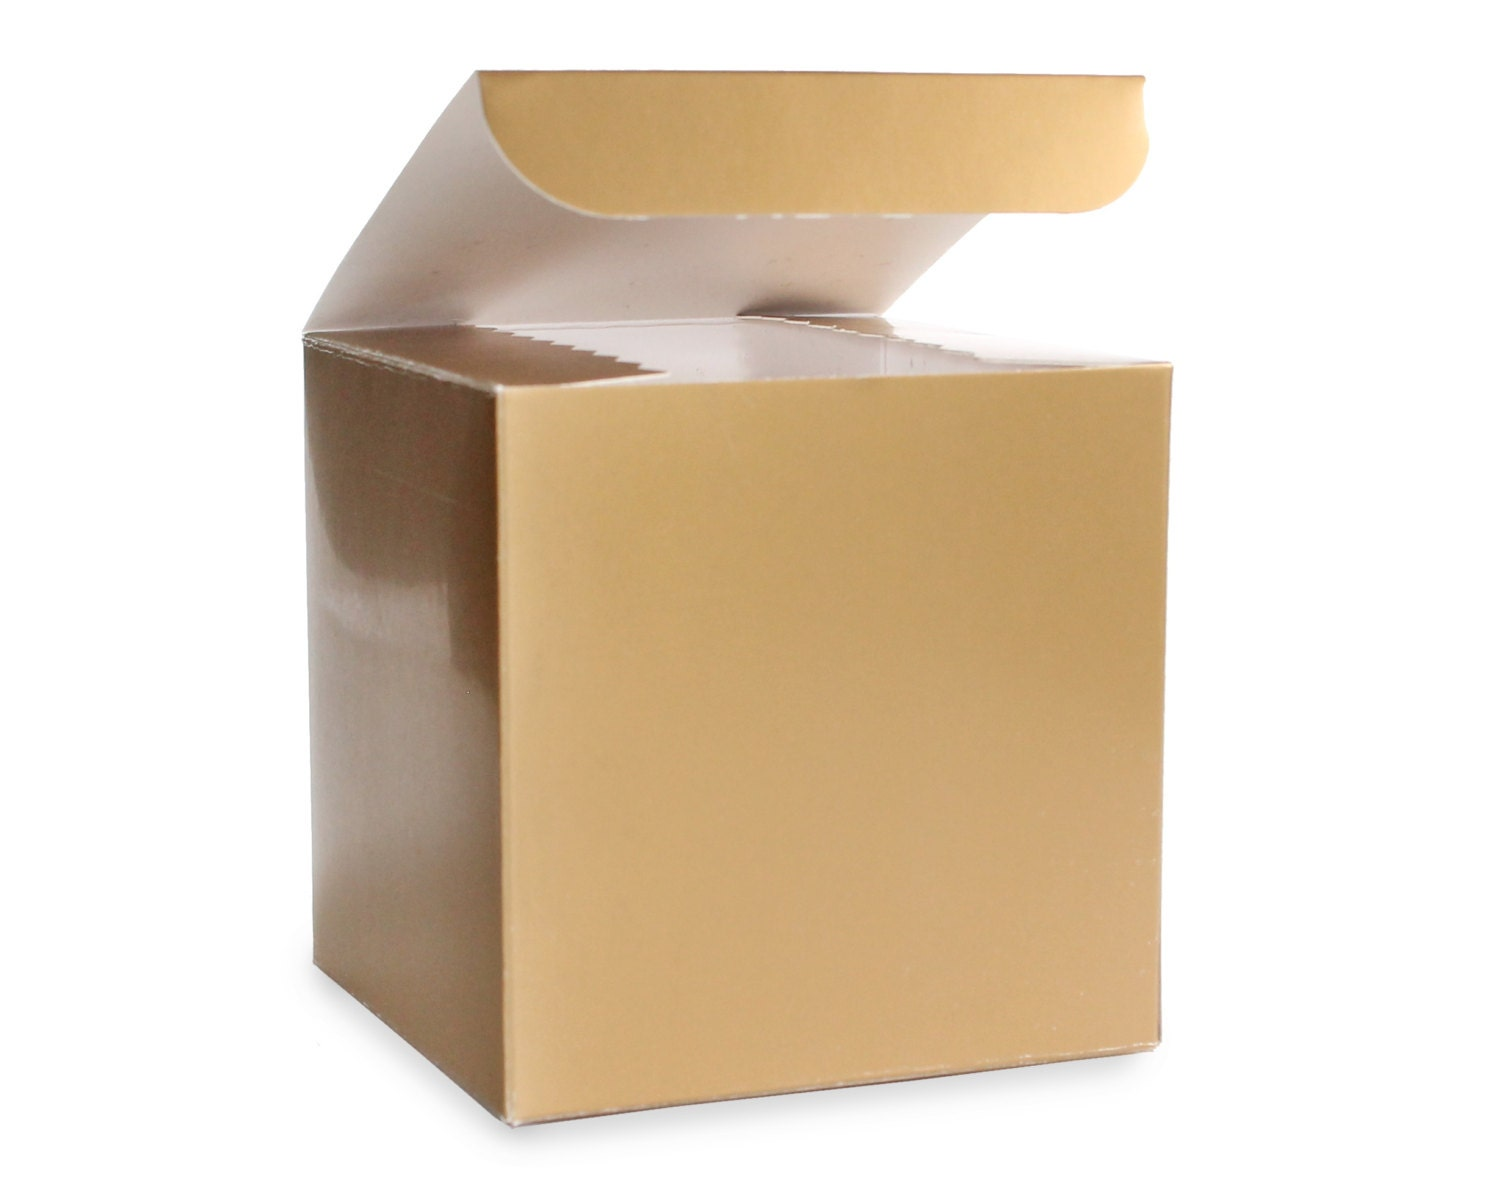 Gold Favor Boxes 4x4x4 : Gold box x party favor boxes glam wedding